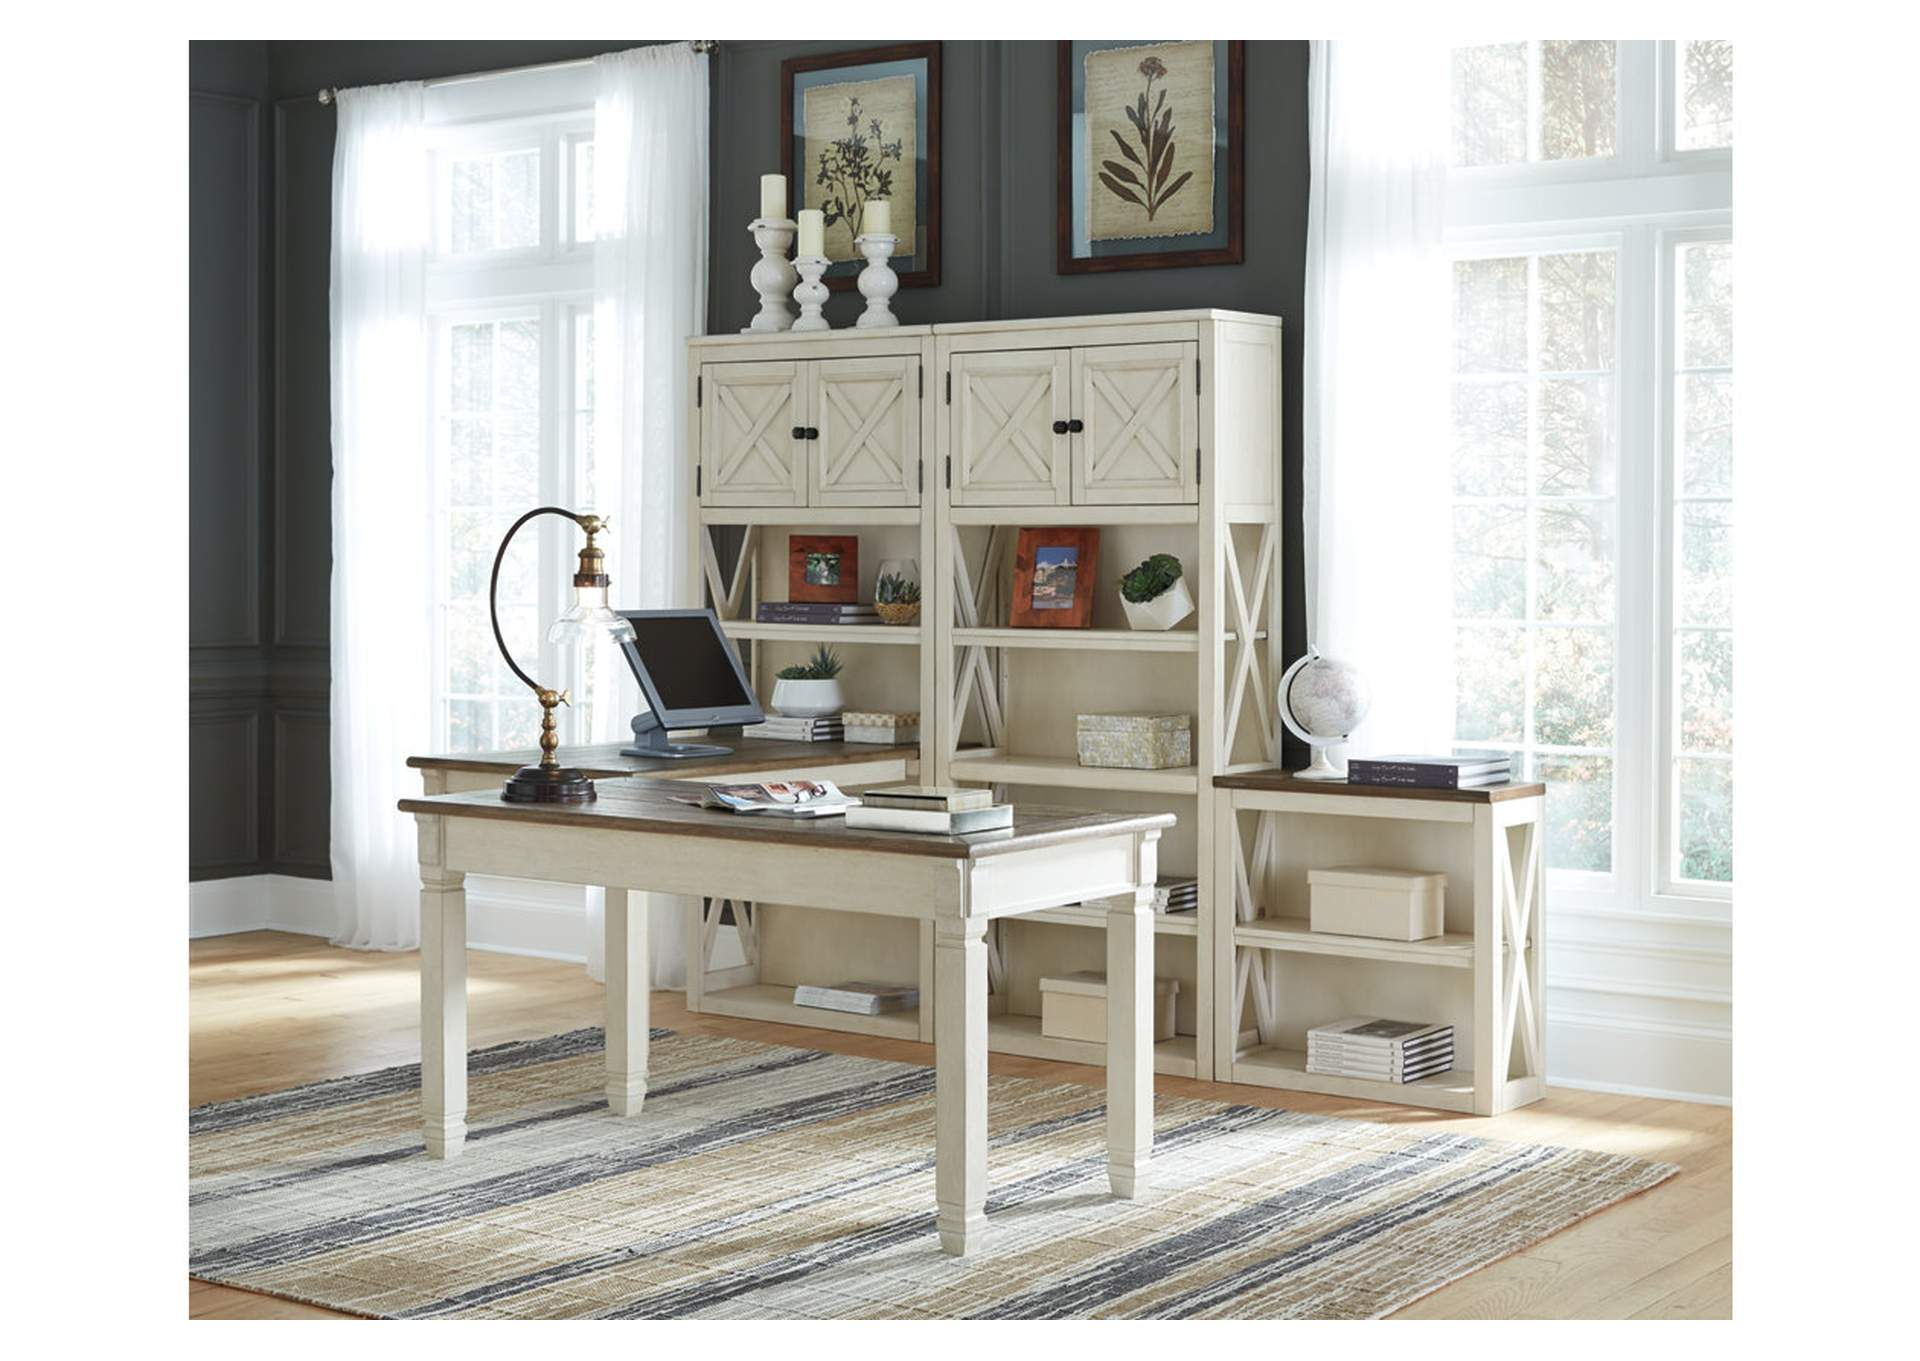 Bolanburg Two-Tone Home Office Desk,Direct To Consumer Express